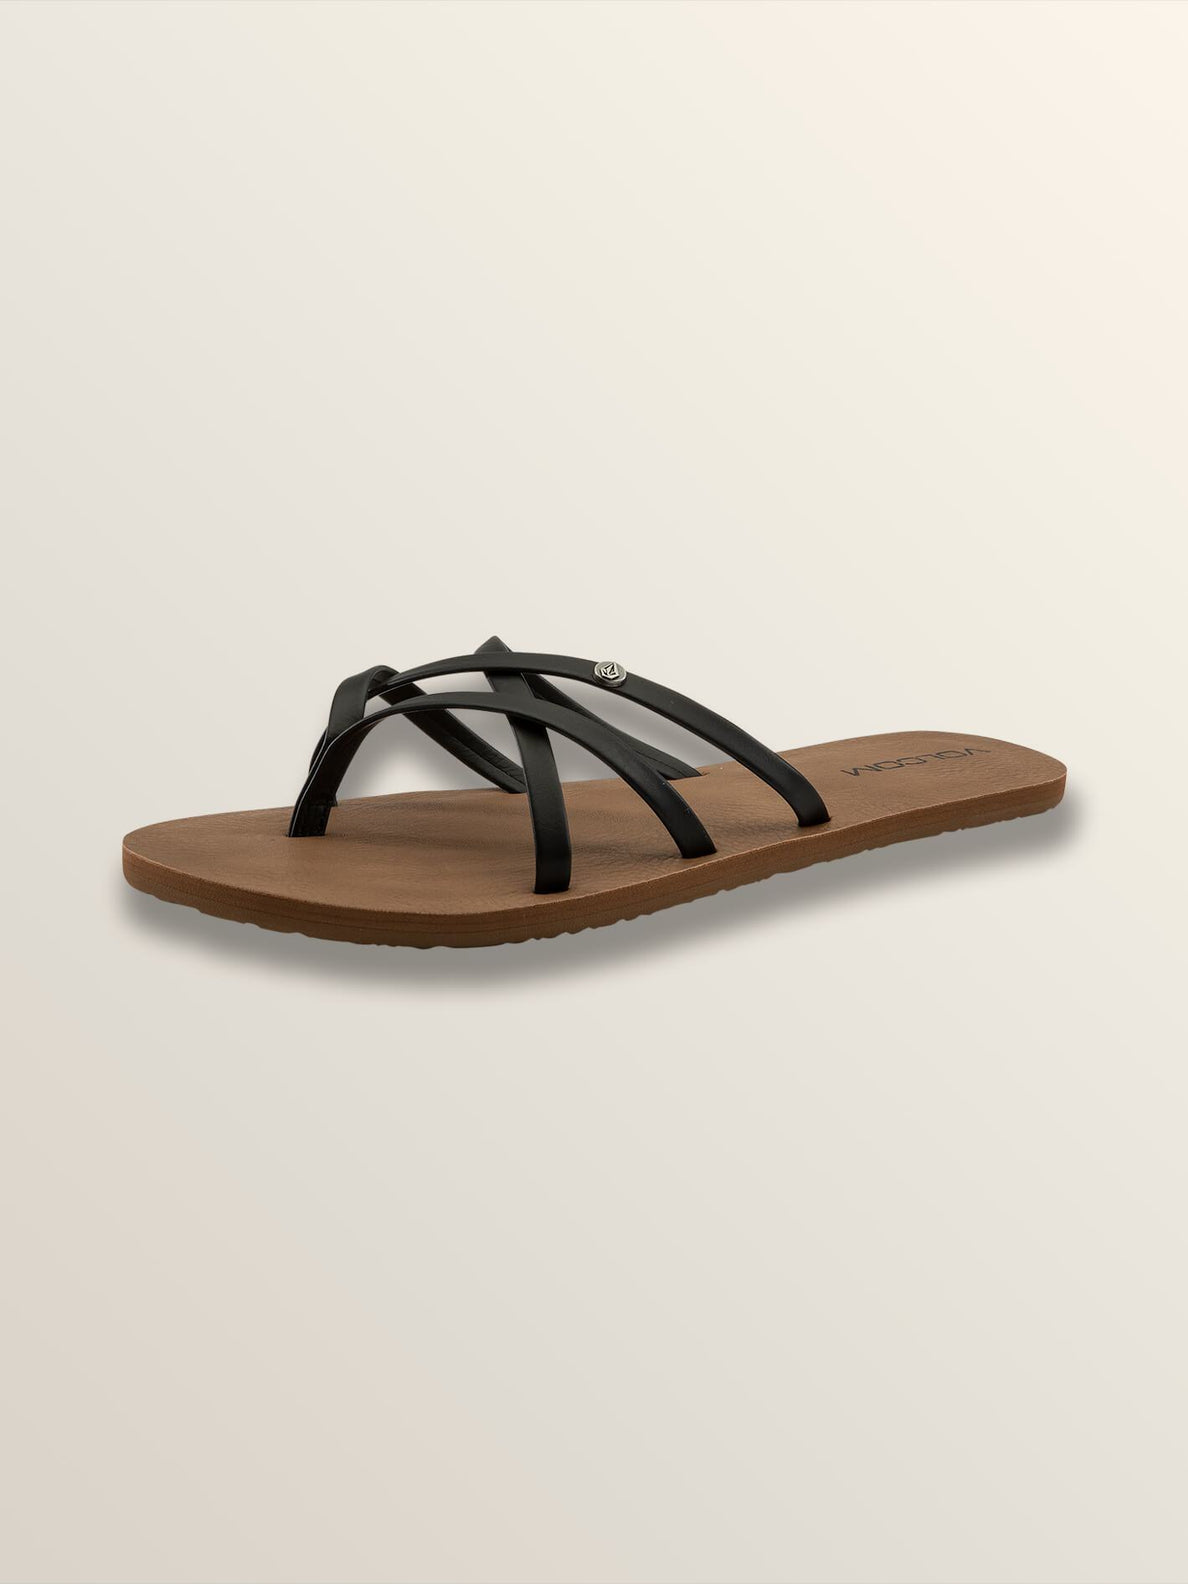 New School Sandals In Black, Back View